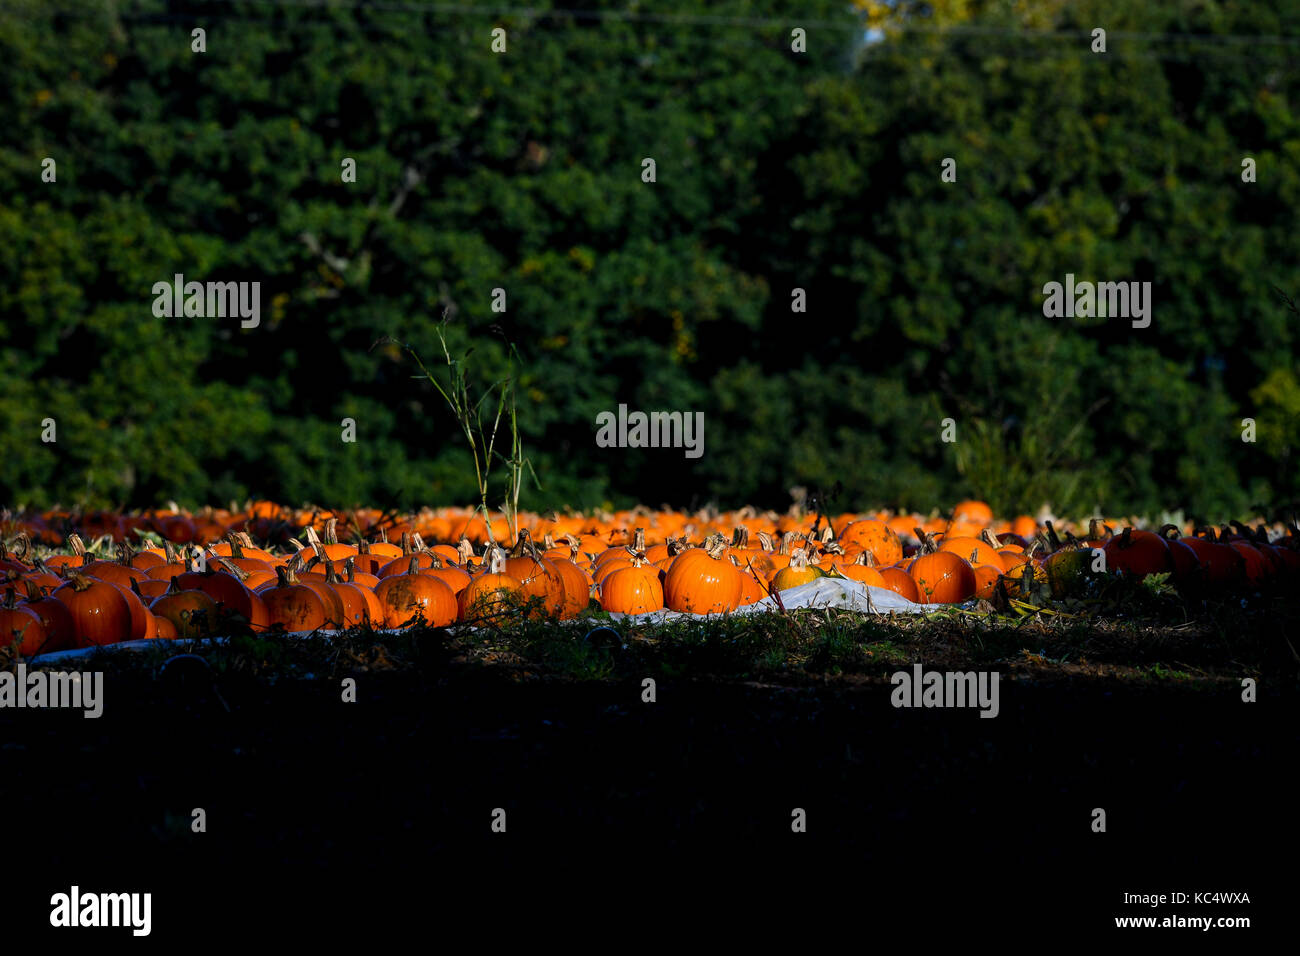 The Pumpkin Harvest Gets Underway In Romsey Hampshire Pumpkin Pickers Take Advantage Of The Break In The Weather As The